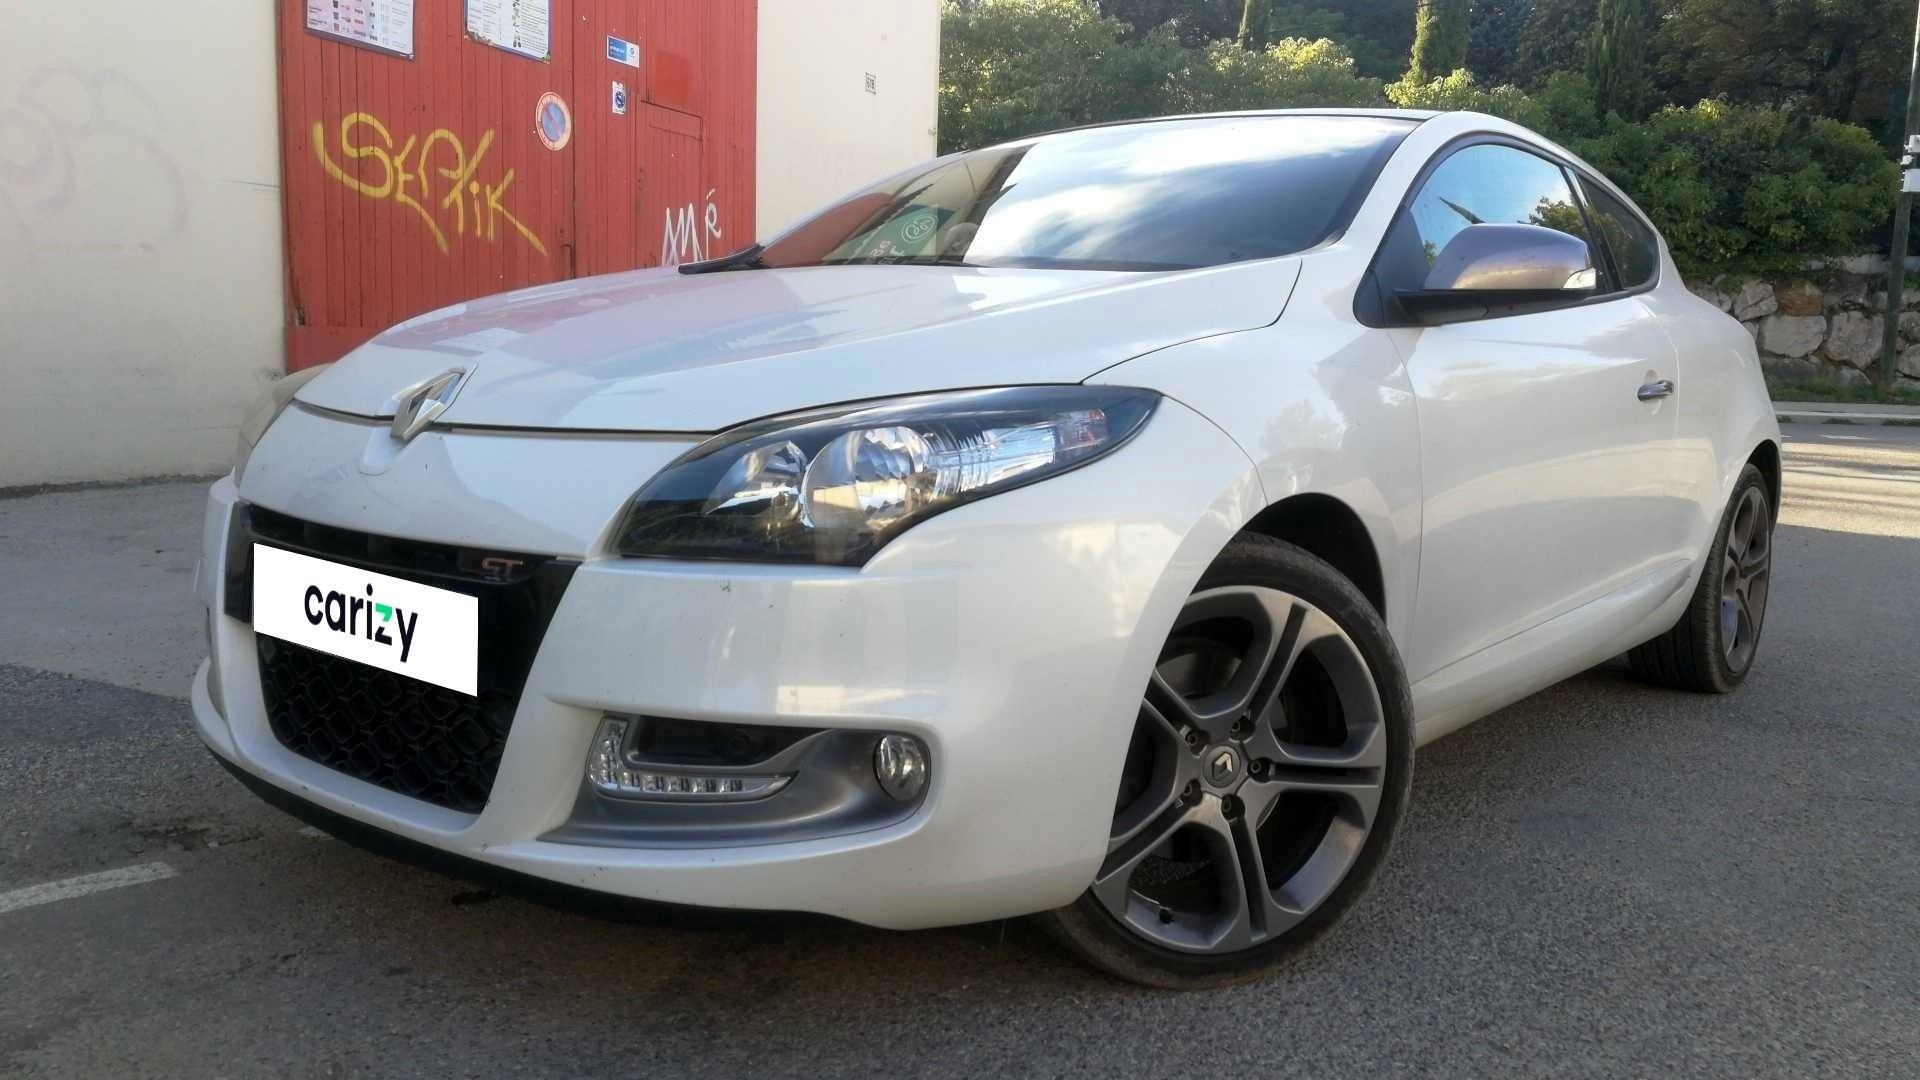 Renault Megane Iii Coupe D Occasion Megane Iii Coupe Dci 165 Fap Gt Barjols Carizy